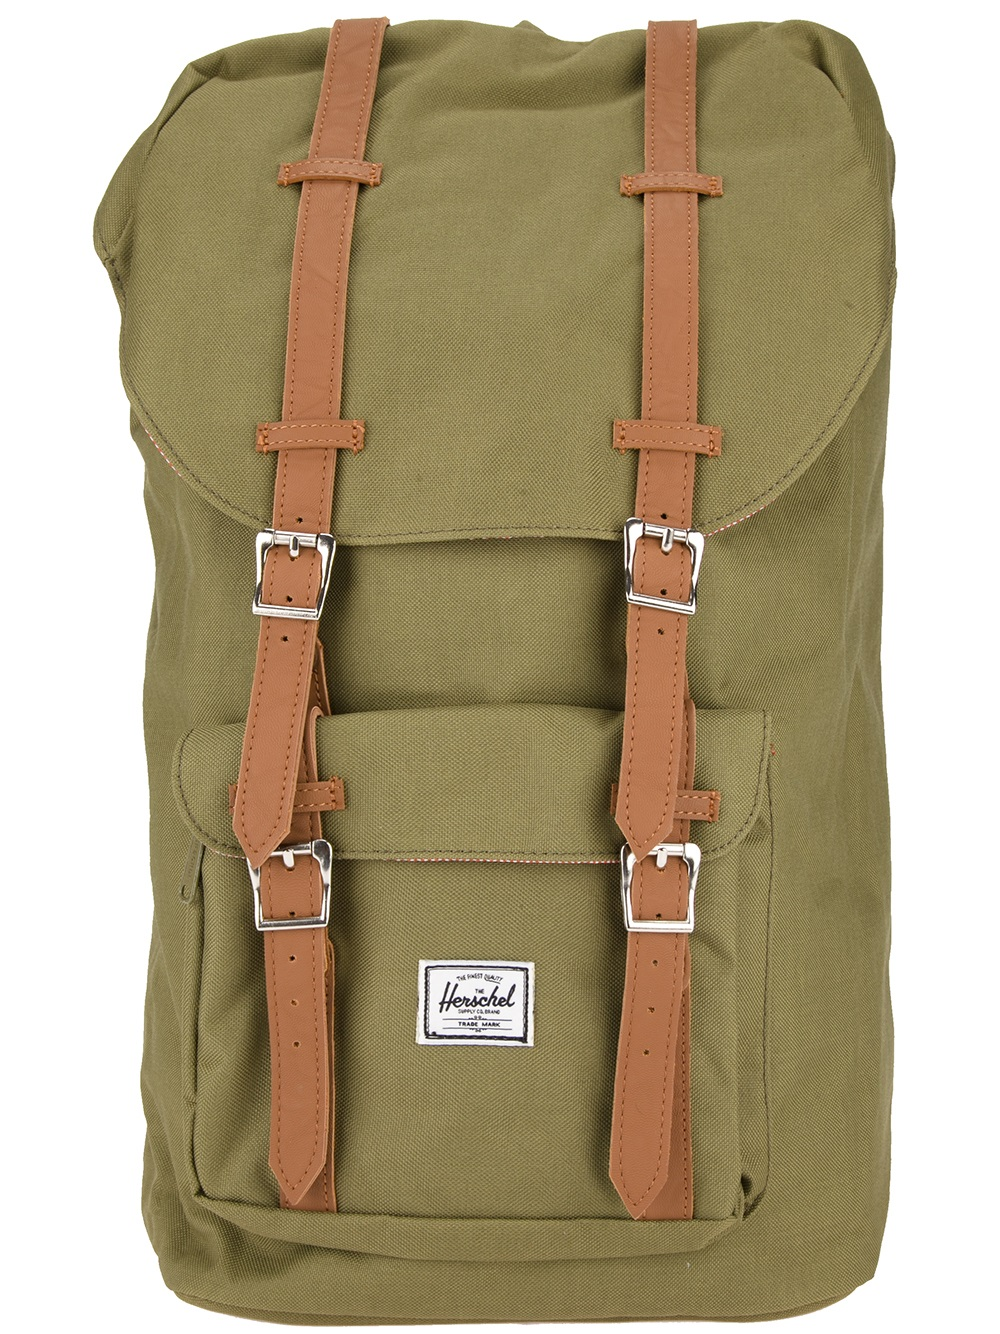 Lyst - Herschel Supply Co. Buckled Backpack in Green for Men 6161aefb39